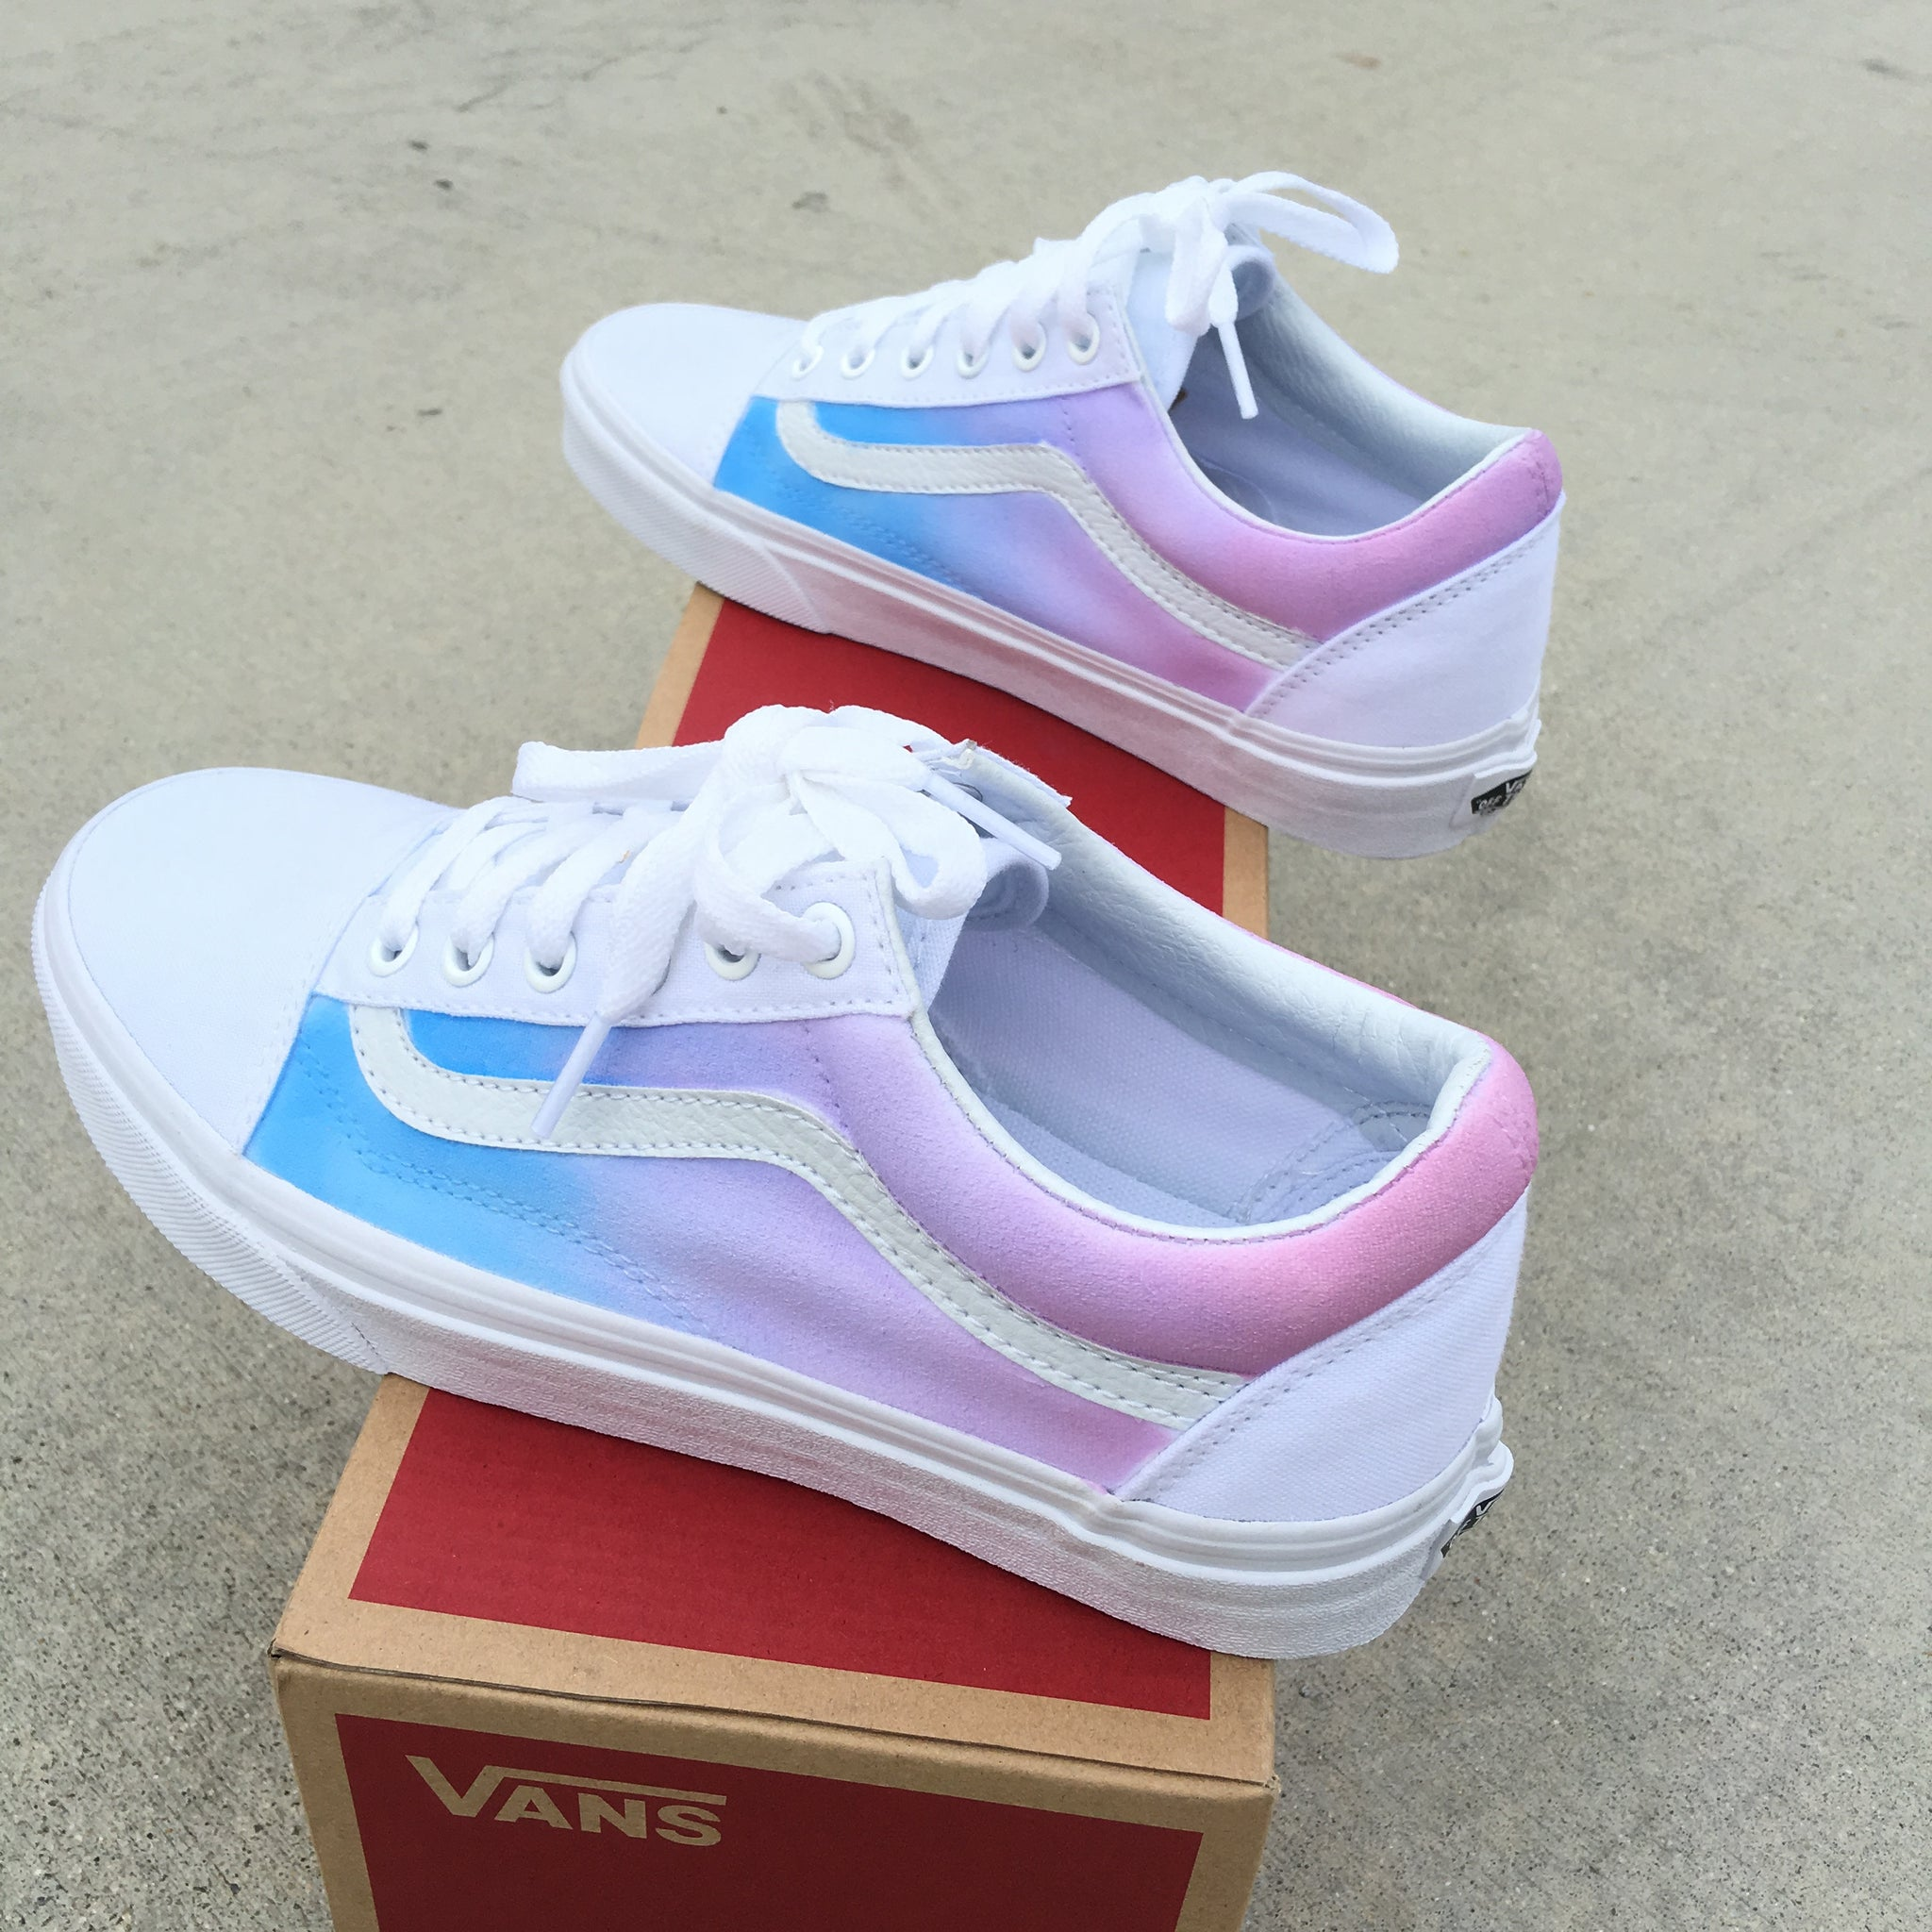 vans Old skool gradient